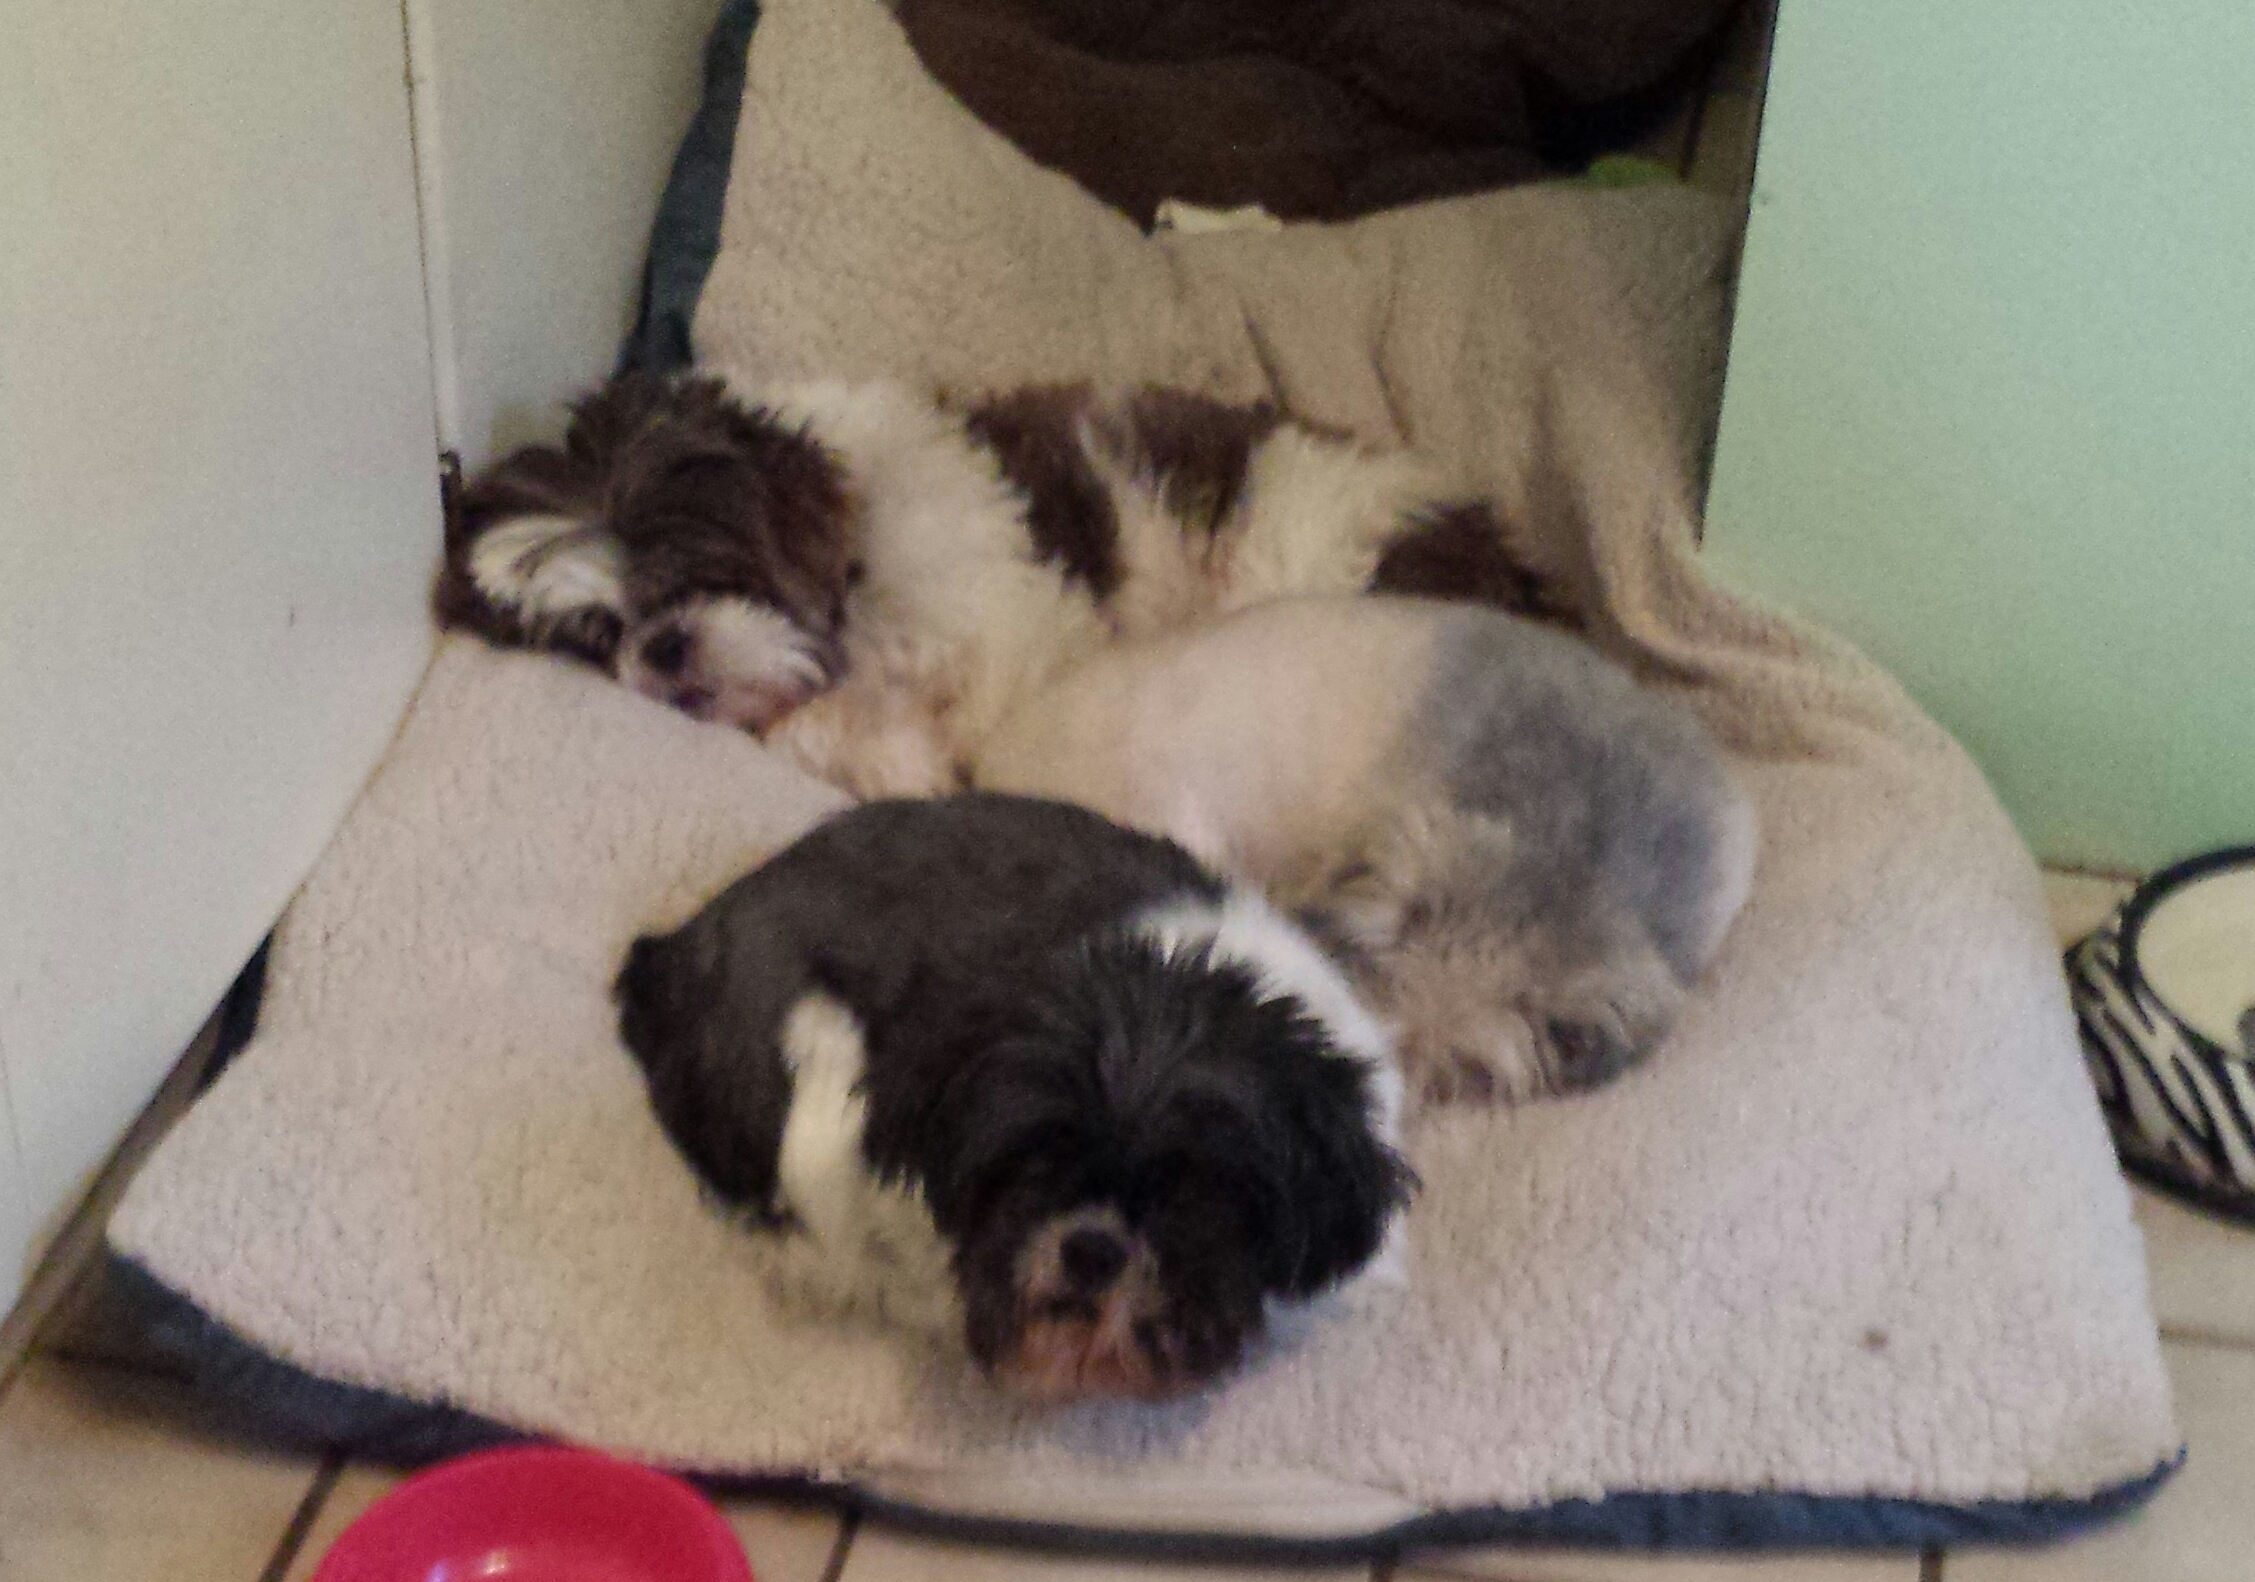 Pets For Adoption At Shih Tzu Rescue Of Central Wi In Schofield Wi